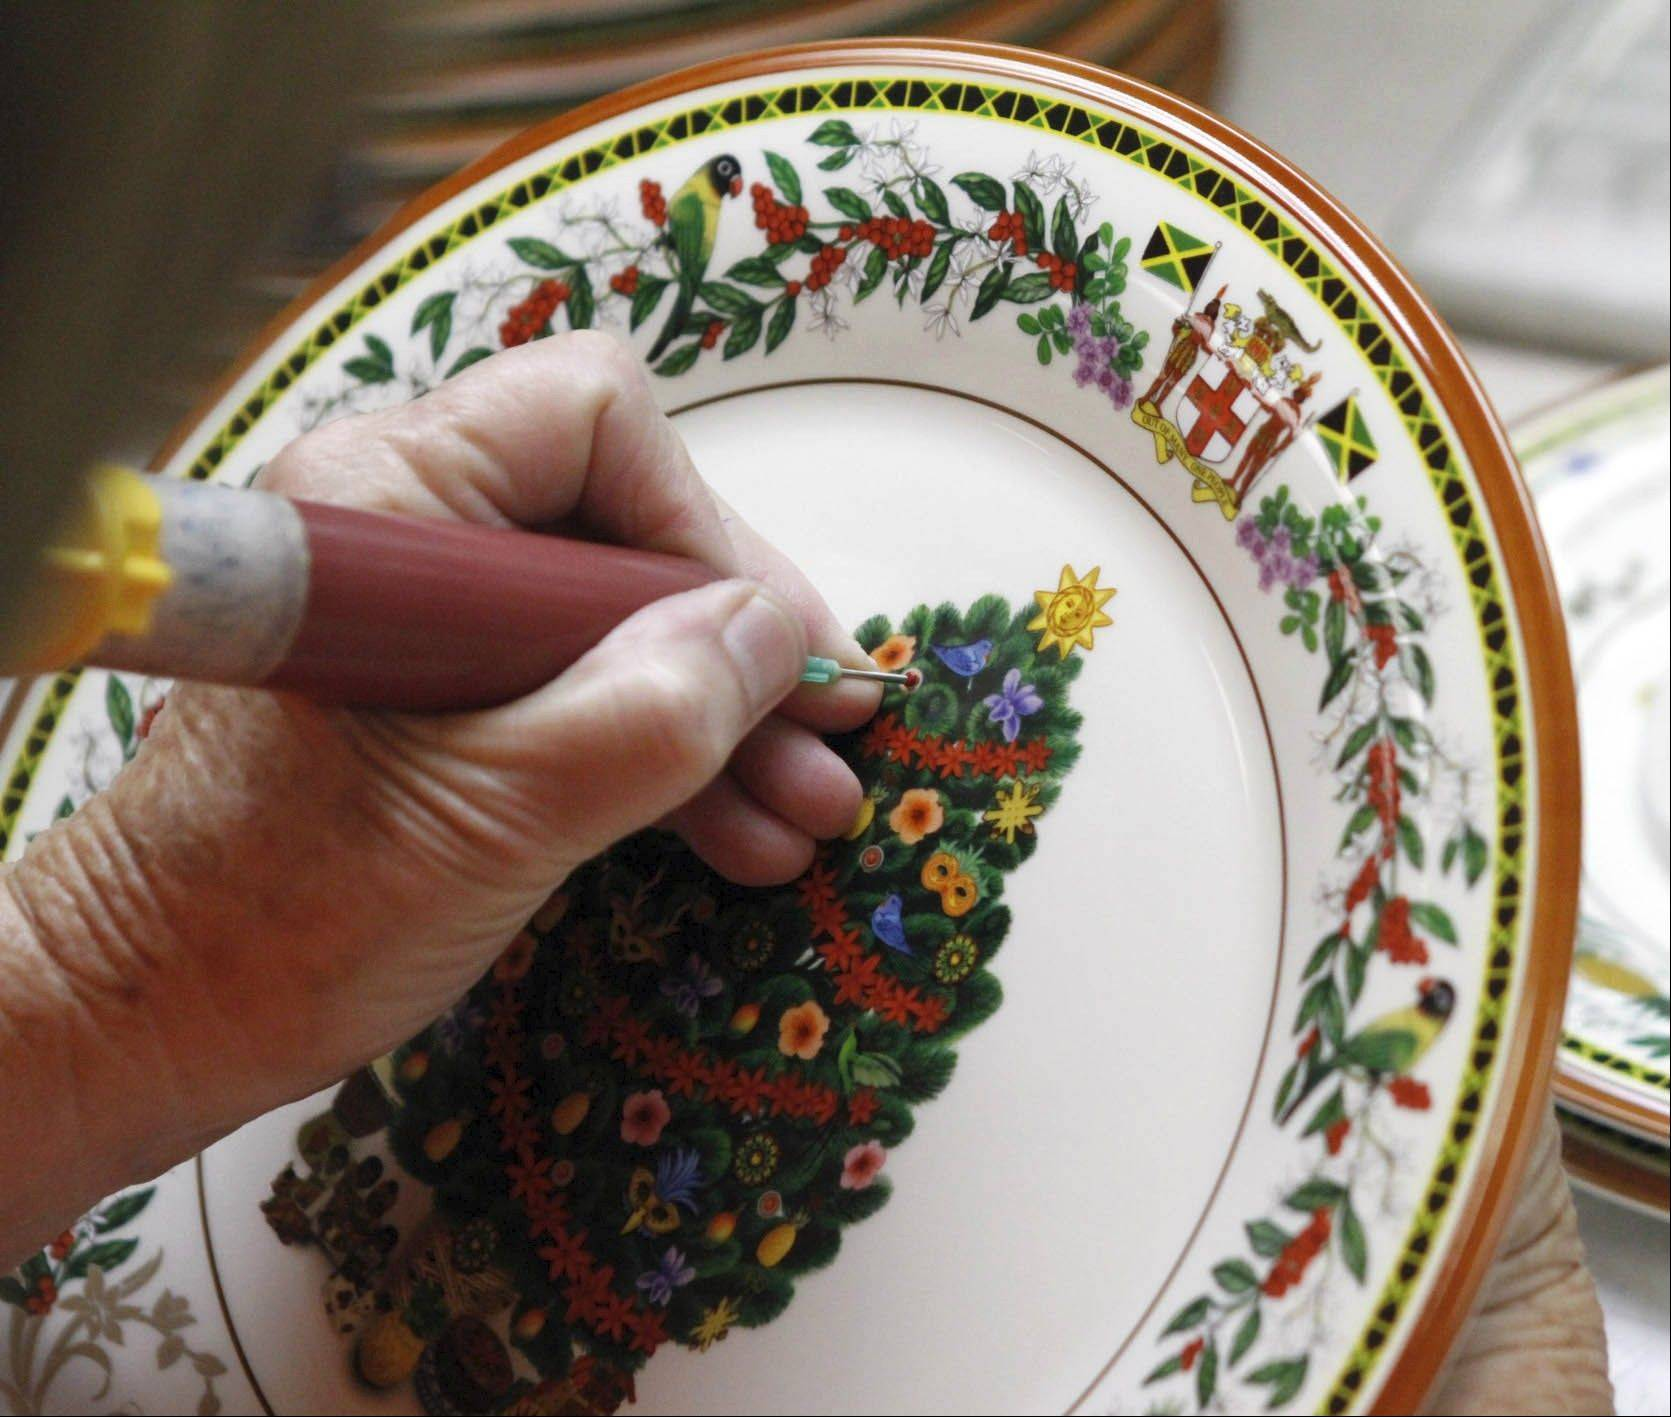 A painter adds color in extreme detail to a seasonal dish at the Lenox china factory & Lenox workers still produce U.S.-made china